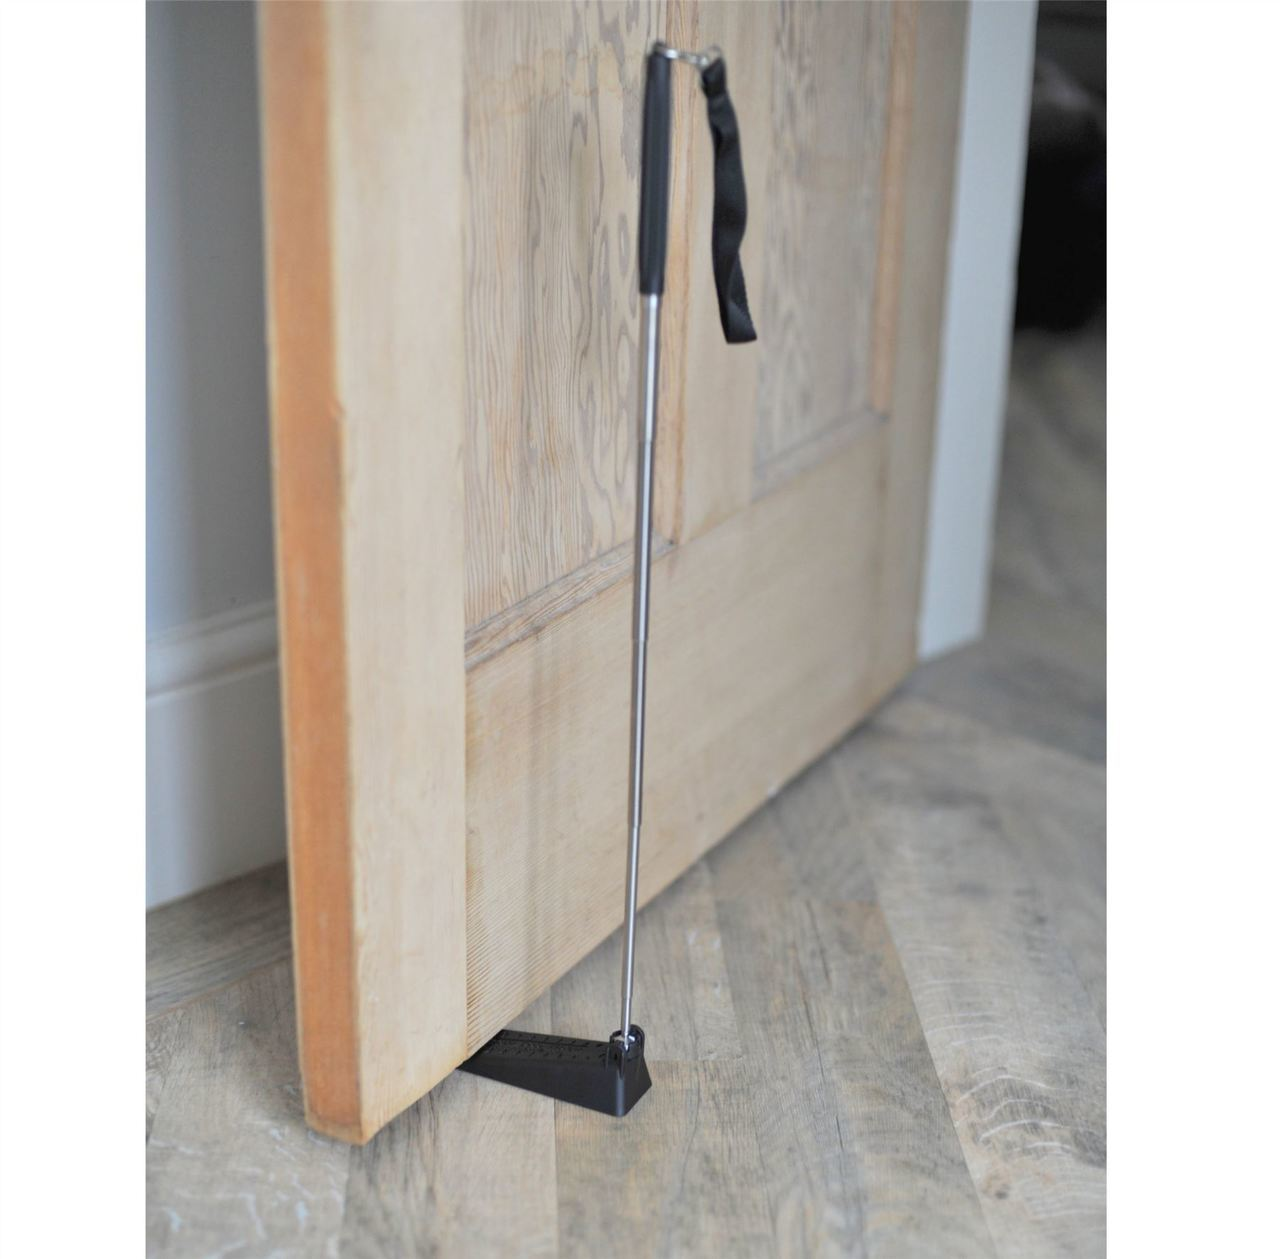 Long Handled Door Wedge